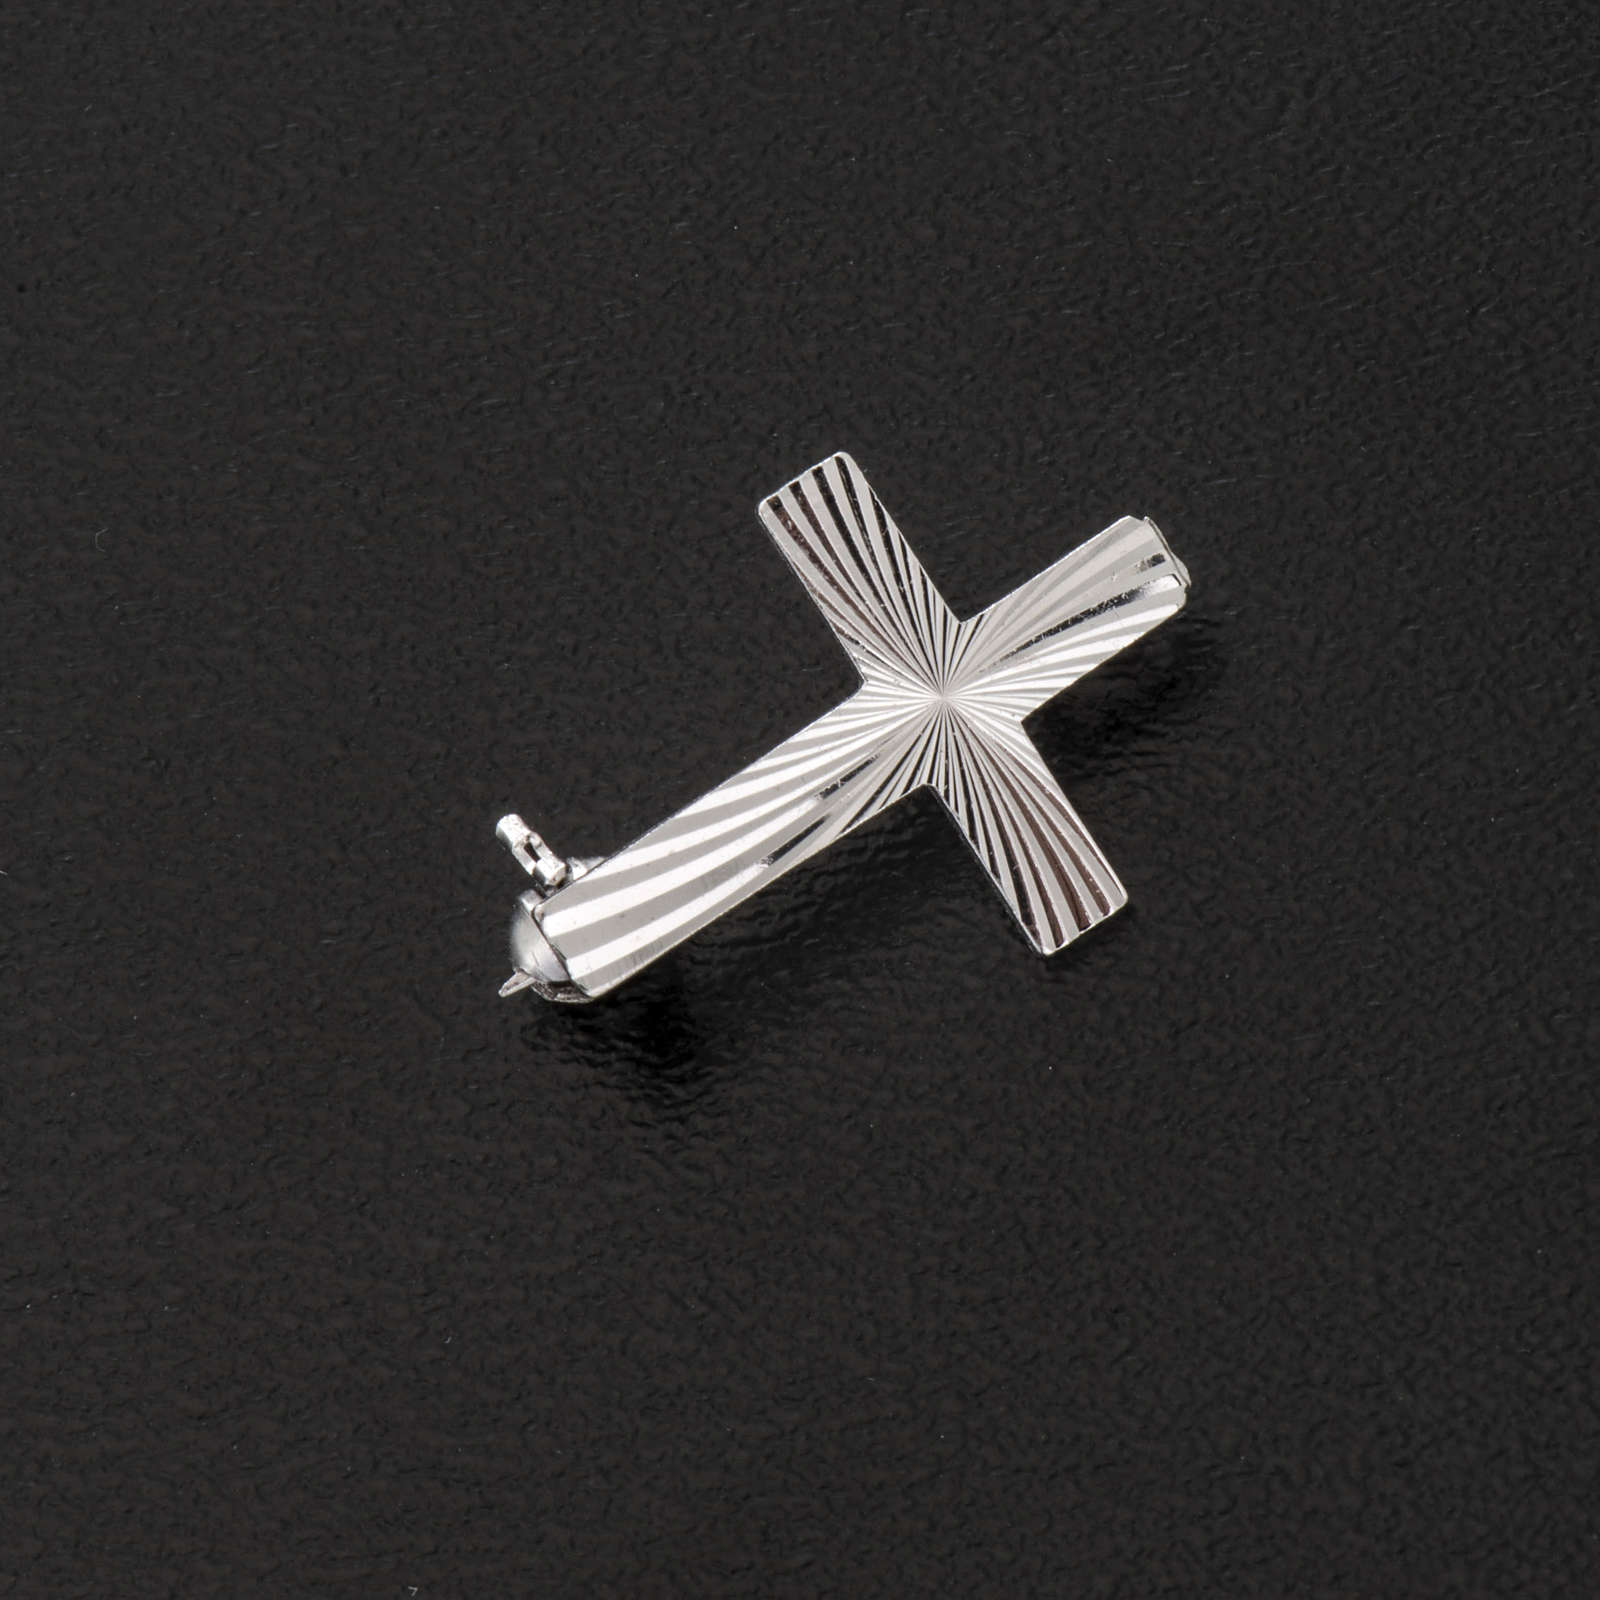 Clergy cross pin in worked sterling silver, H2cm 4